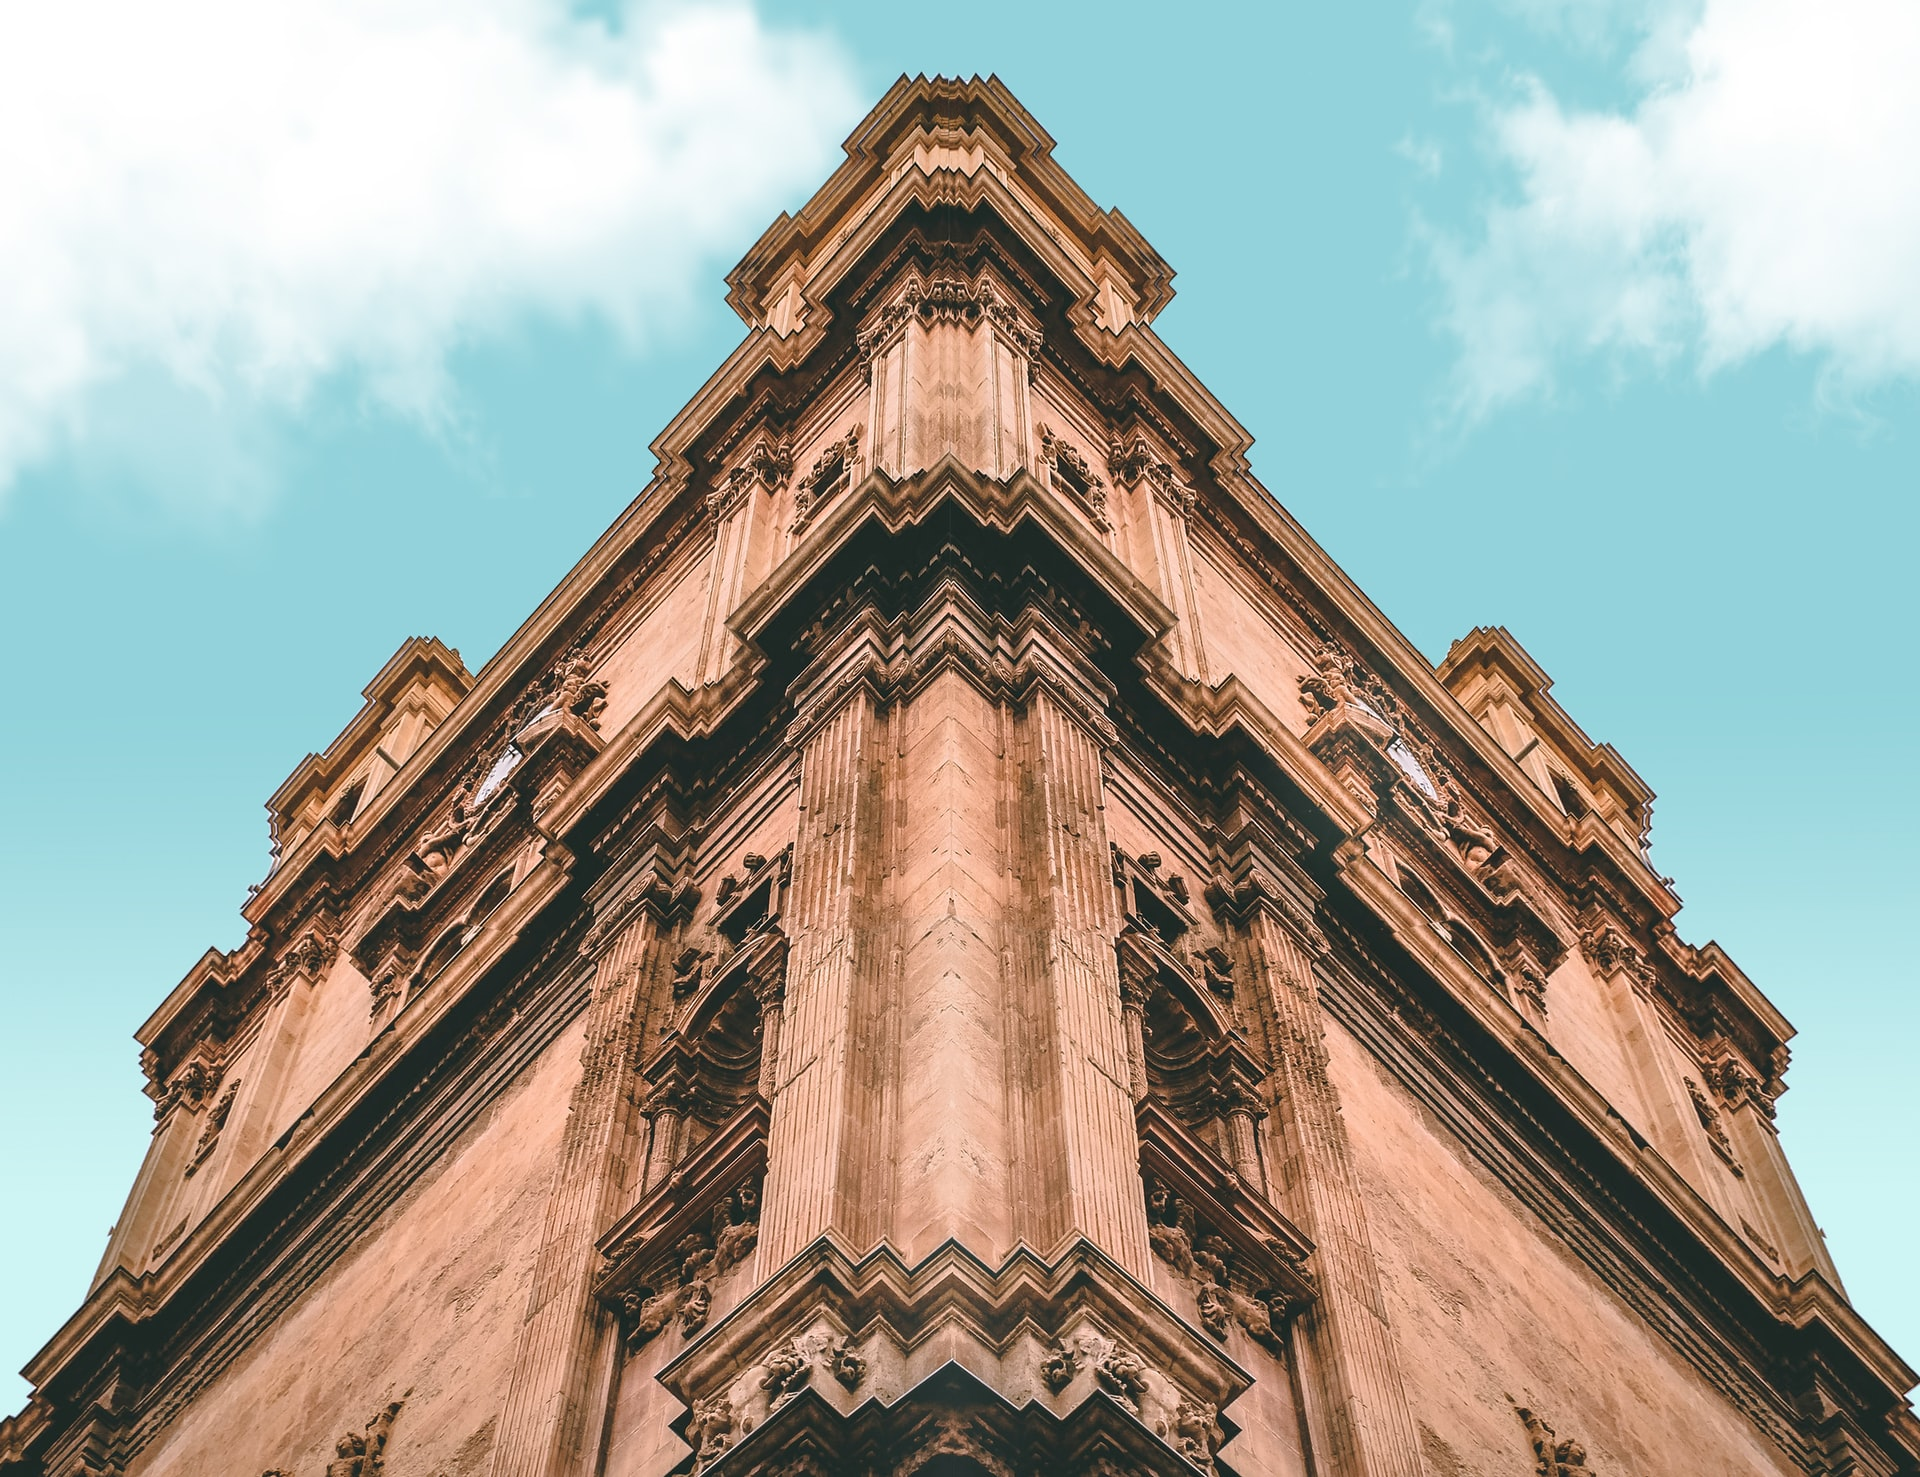 The Cathedral of Murcia, Spain